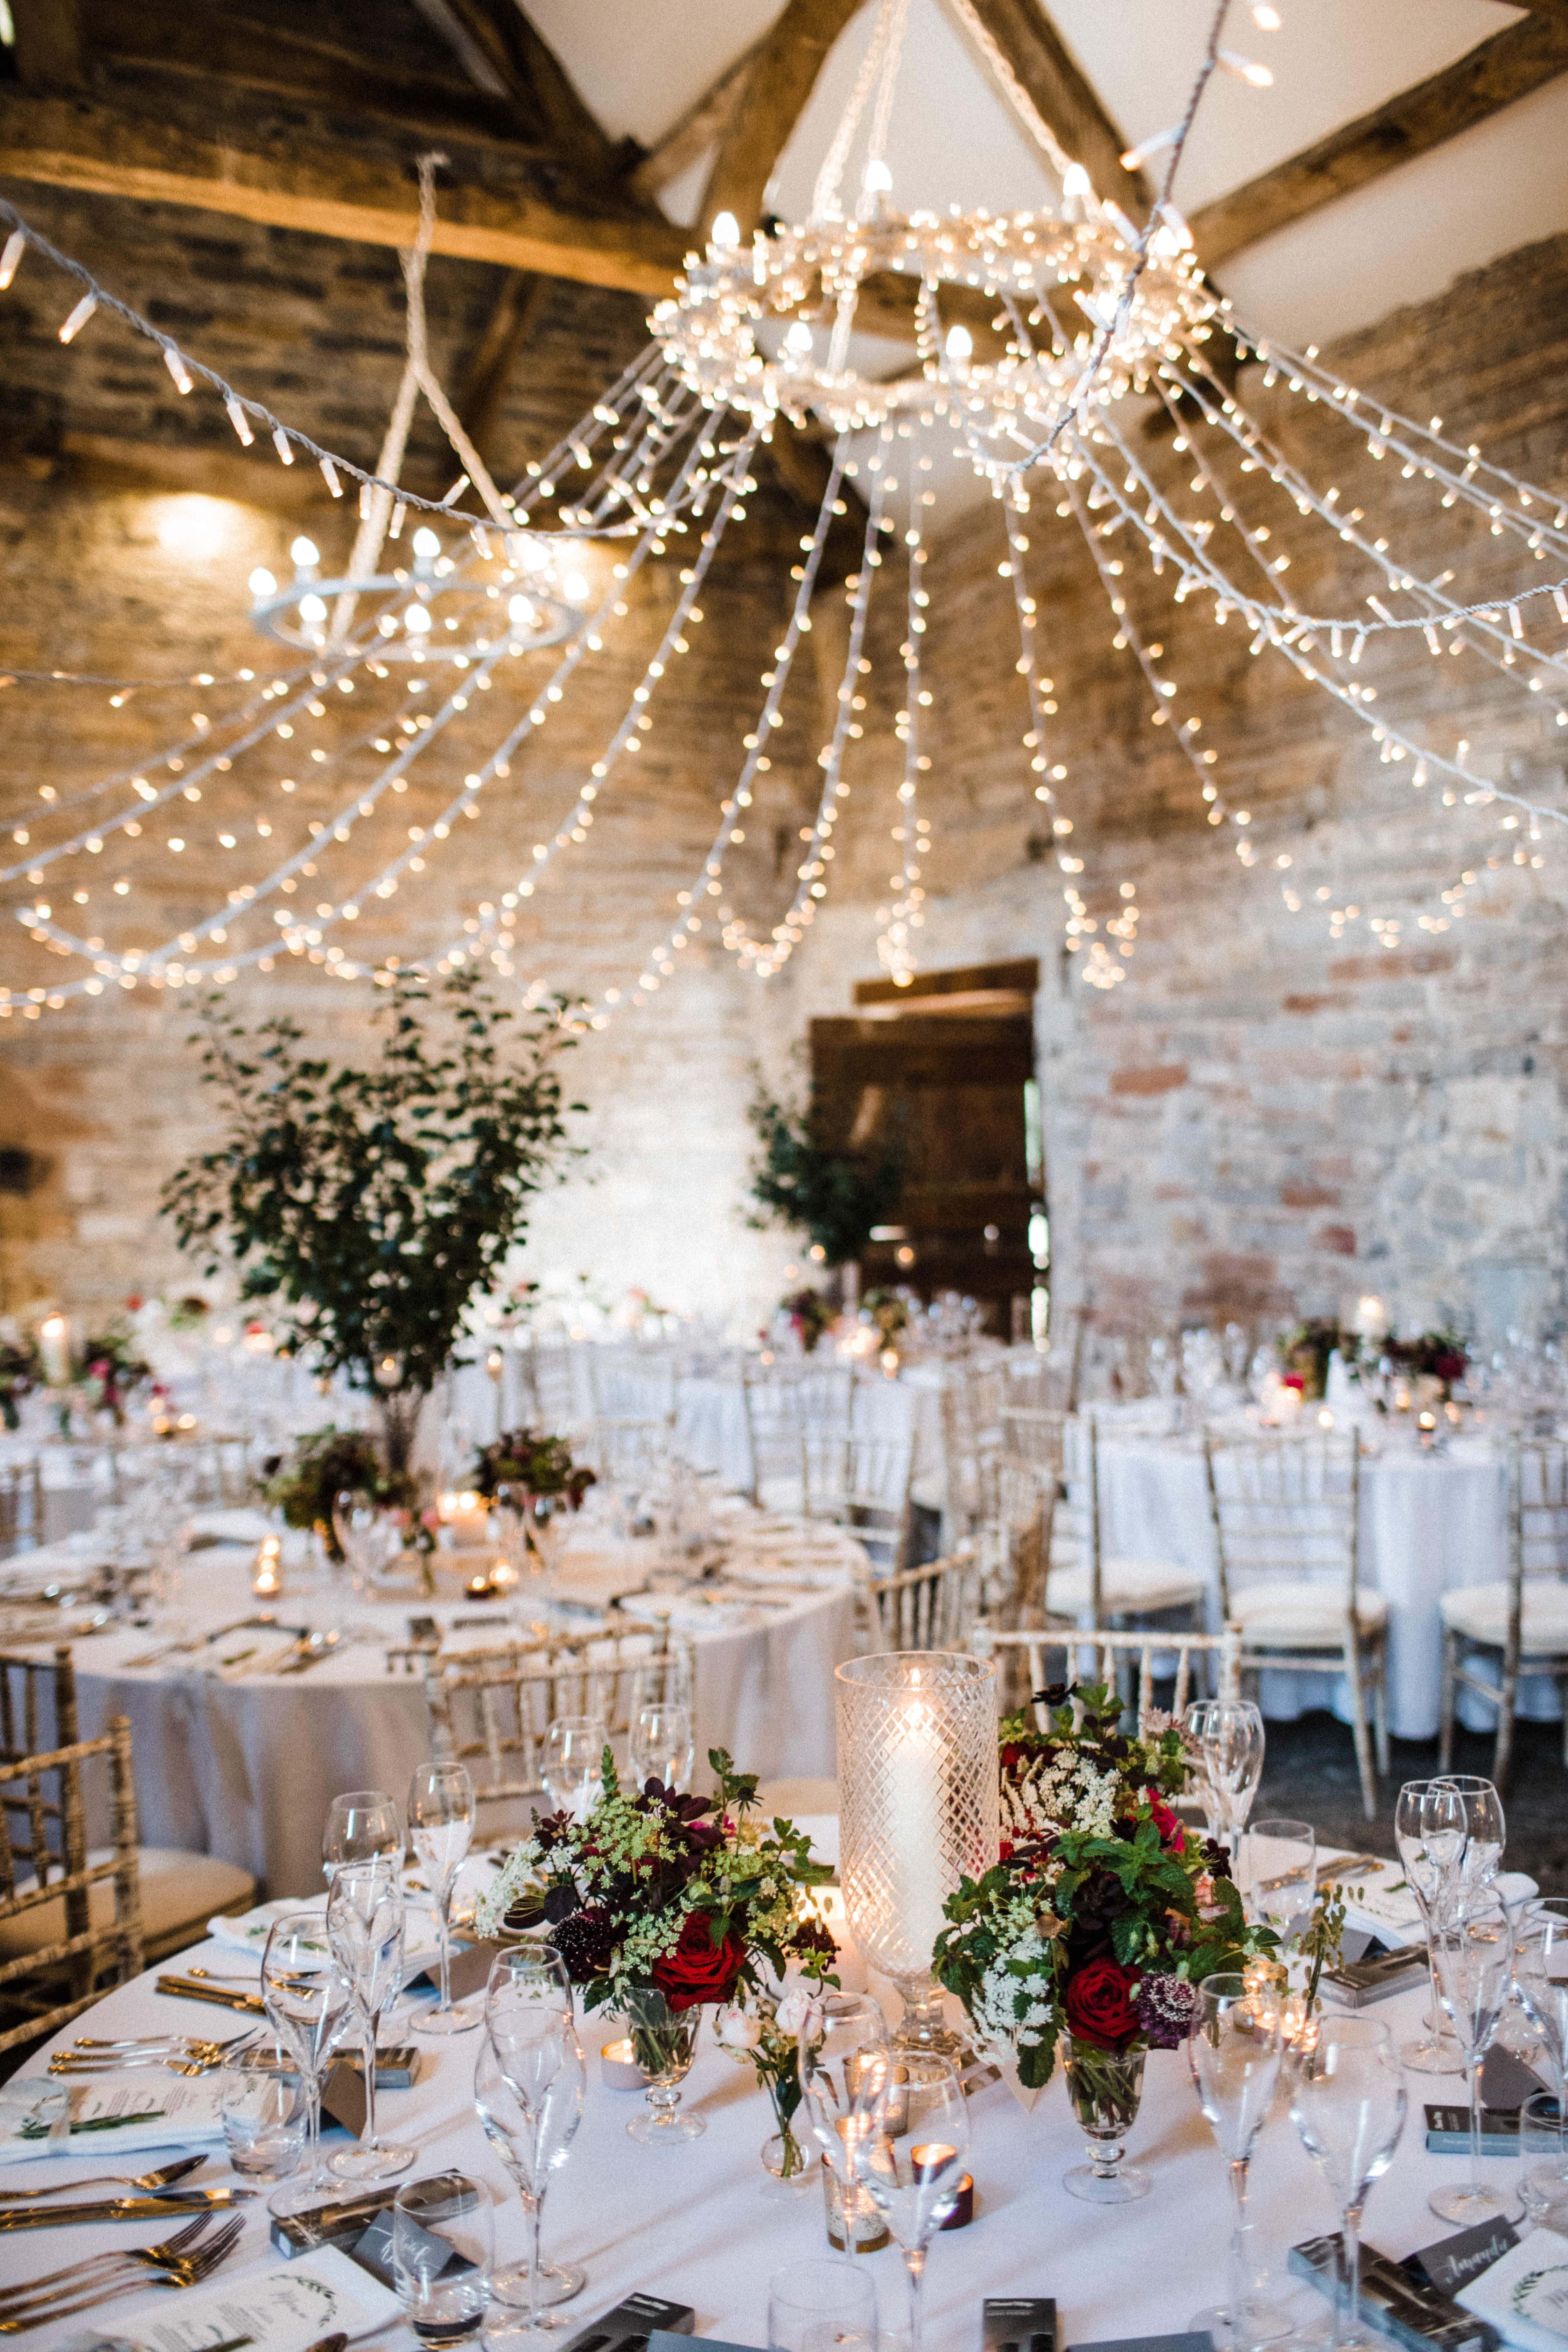 A Sunny Somerset Barn Wedding With Cake Canapes A Sarah Seven Dress Barn Wedding Decorations Wedding Decorations Wedding